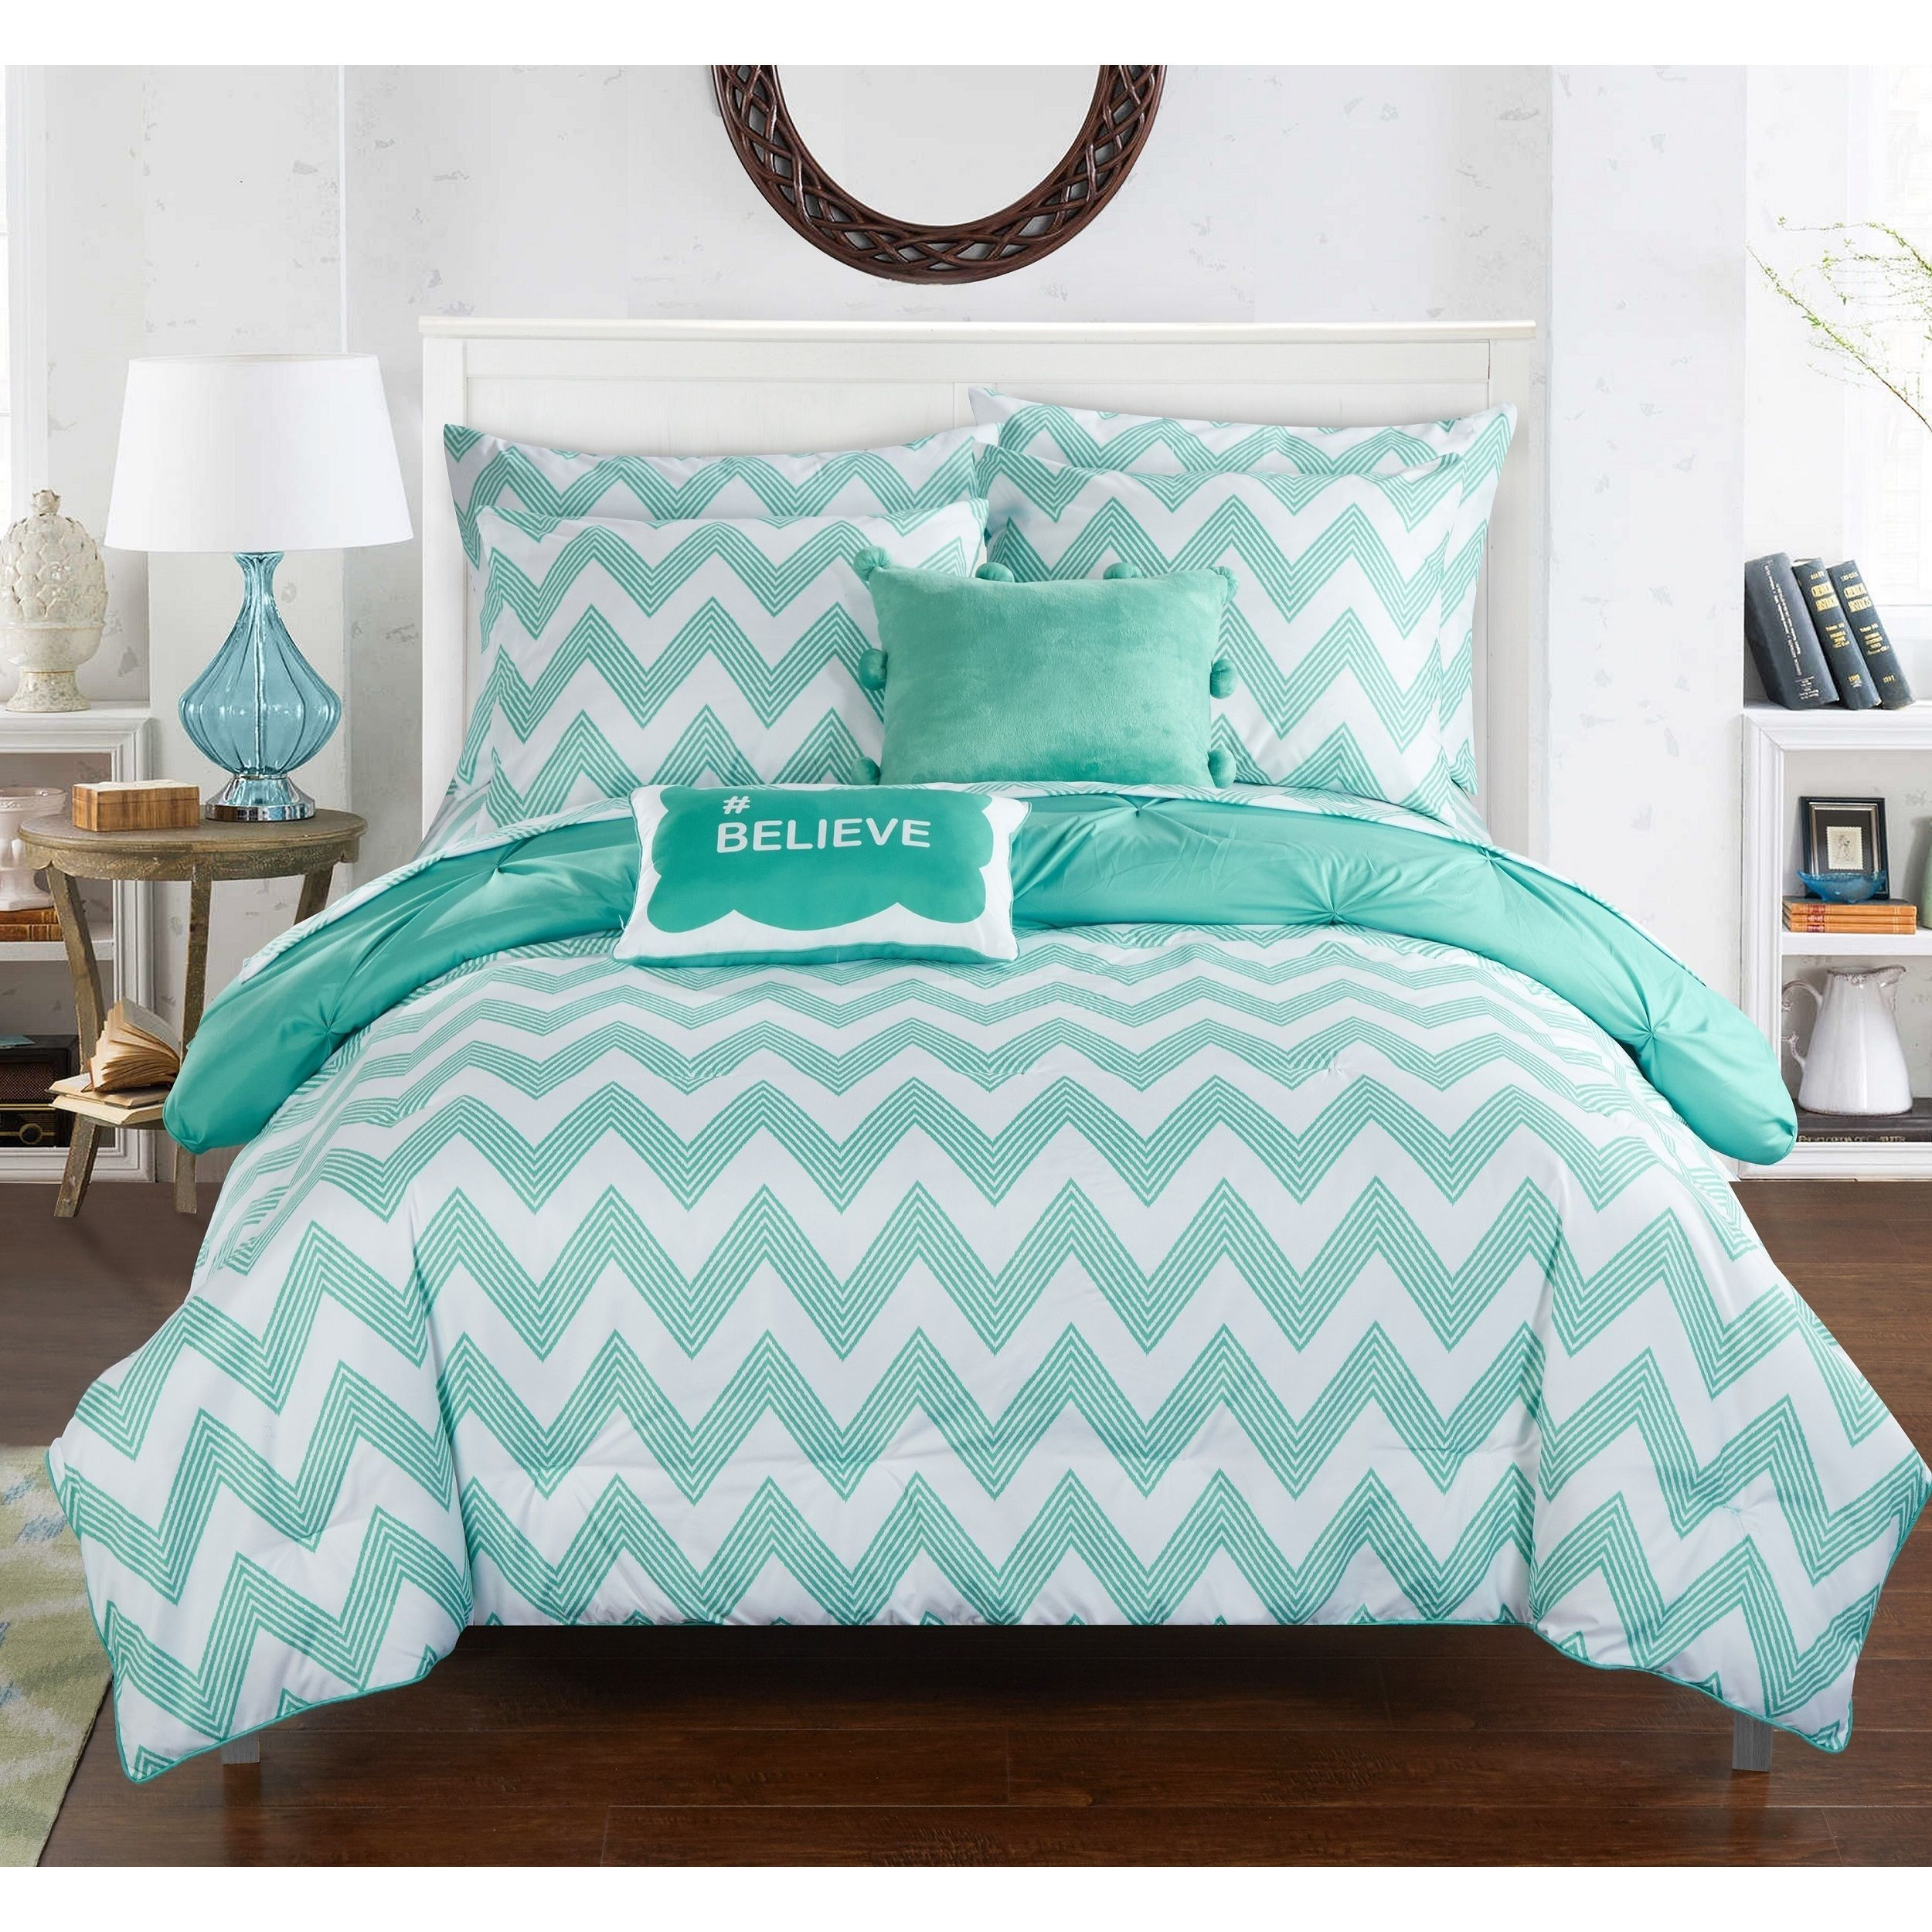 kind of full target nursery ideas sets spillo sheets remarkable baby king plain set bedding tiffany caves twin best other colored solid glamorous bed peyton the one has blue comforter xl